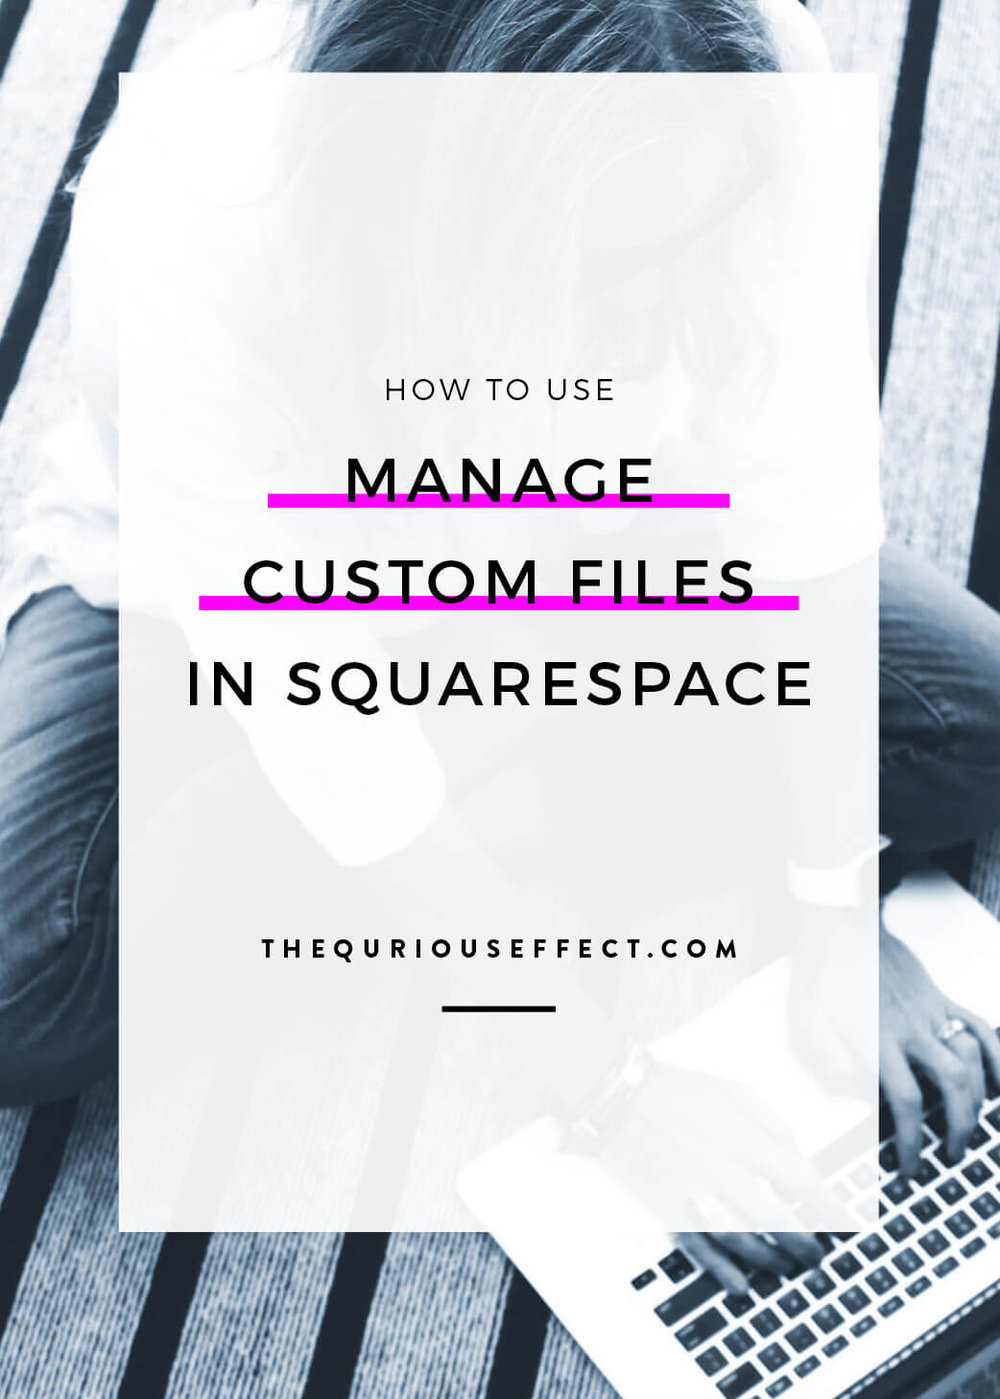 Wondering where the media library is in Squarespace? Looking for how to add images to your site that you want to hide (hello Pinterest!)? Use Manage Custom Files in Squarespace to add images to your website without having to place them into a post or on a page. Click through to read the post for the full how to.